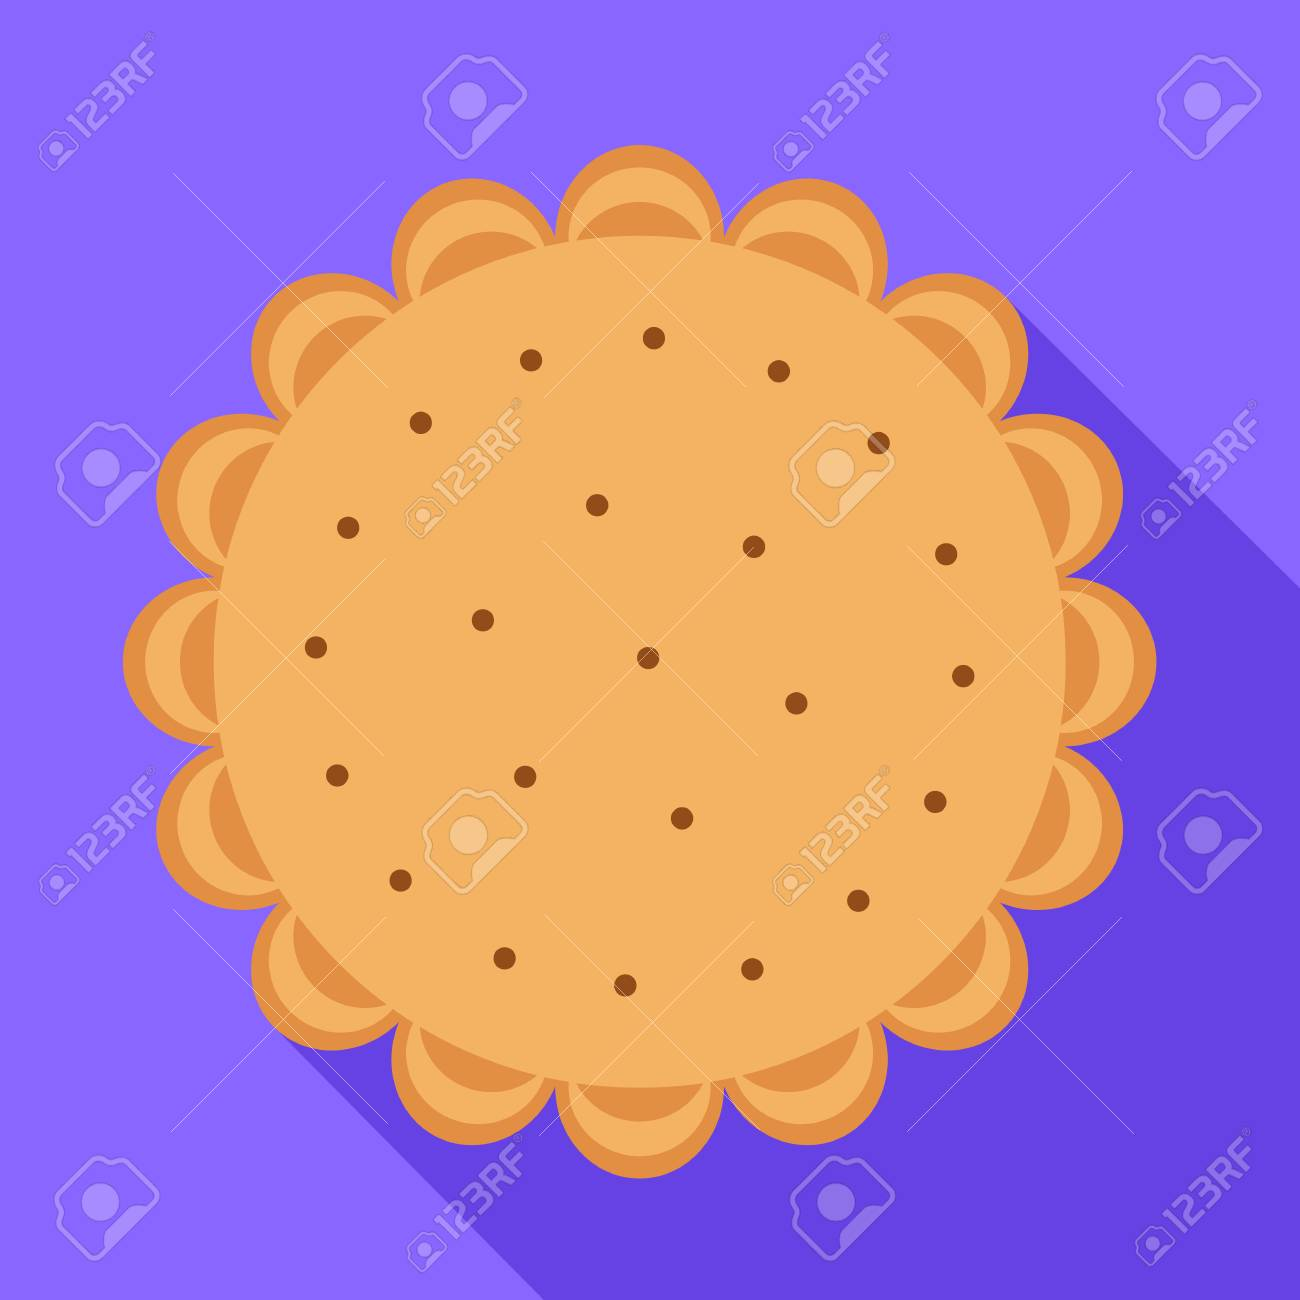 biscuit icon flat illustration of biscuit vector icon for web royalty free cliparts vectors and stock illustration image 125861638 123rf com